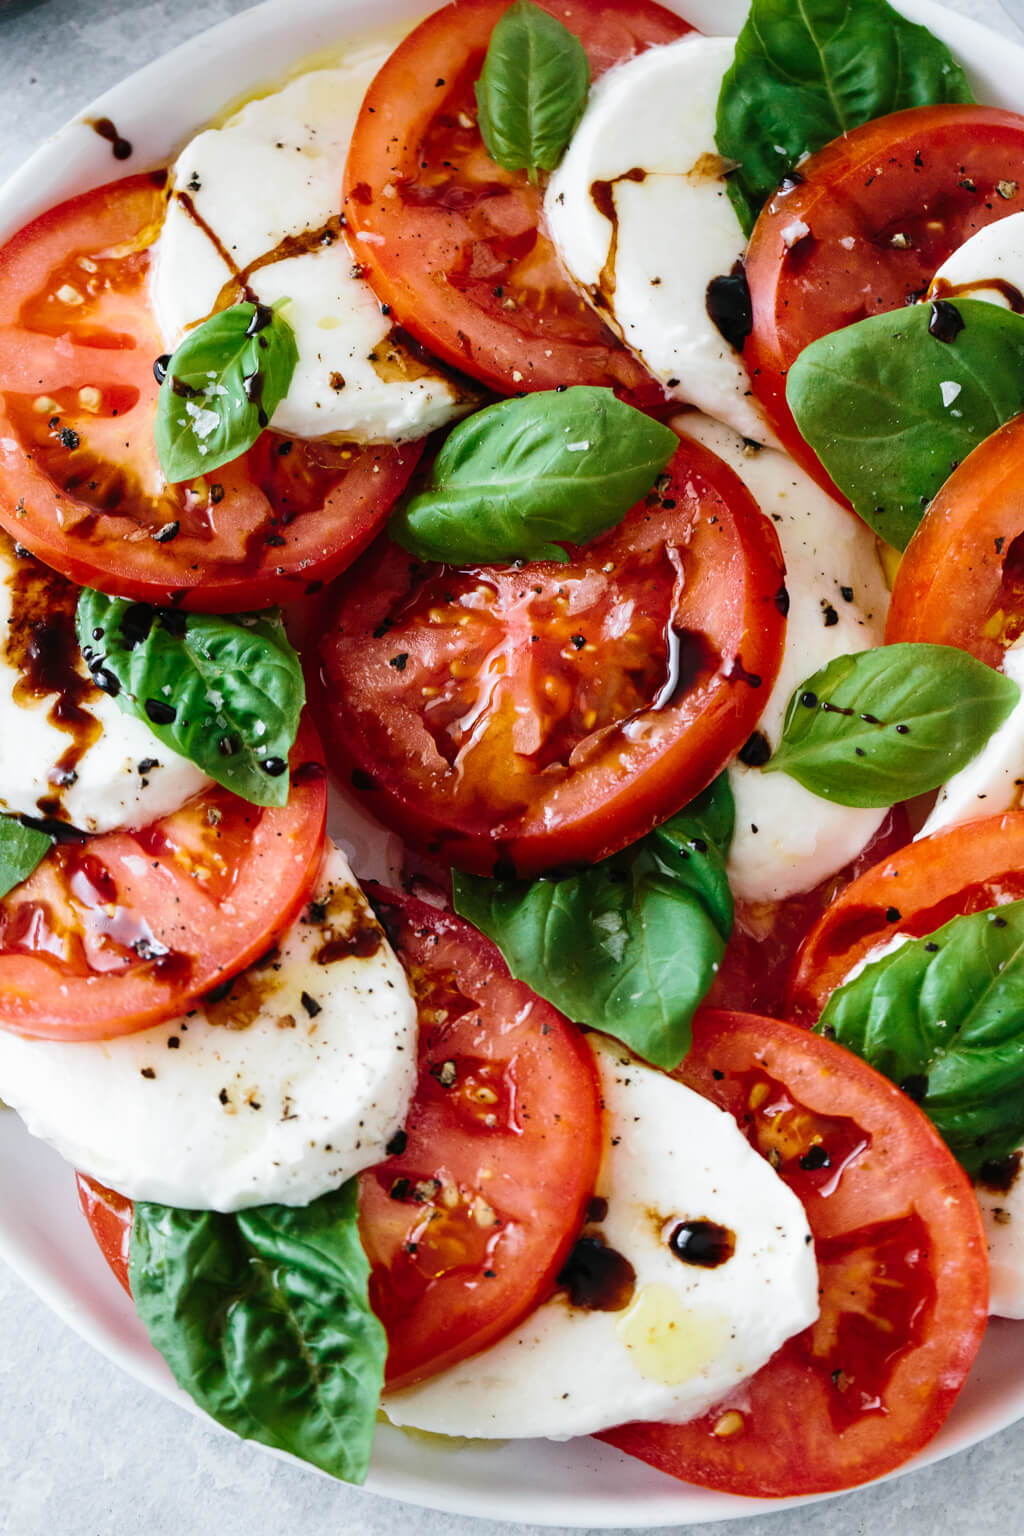 Slices of tomato and mozzarella on a plate with fresh basil leaves.